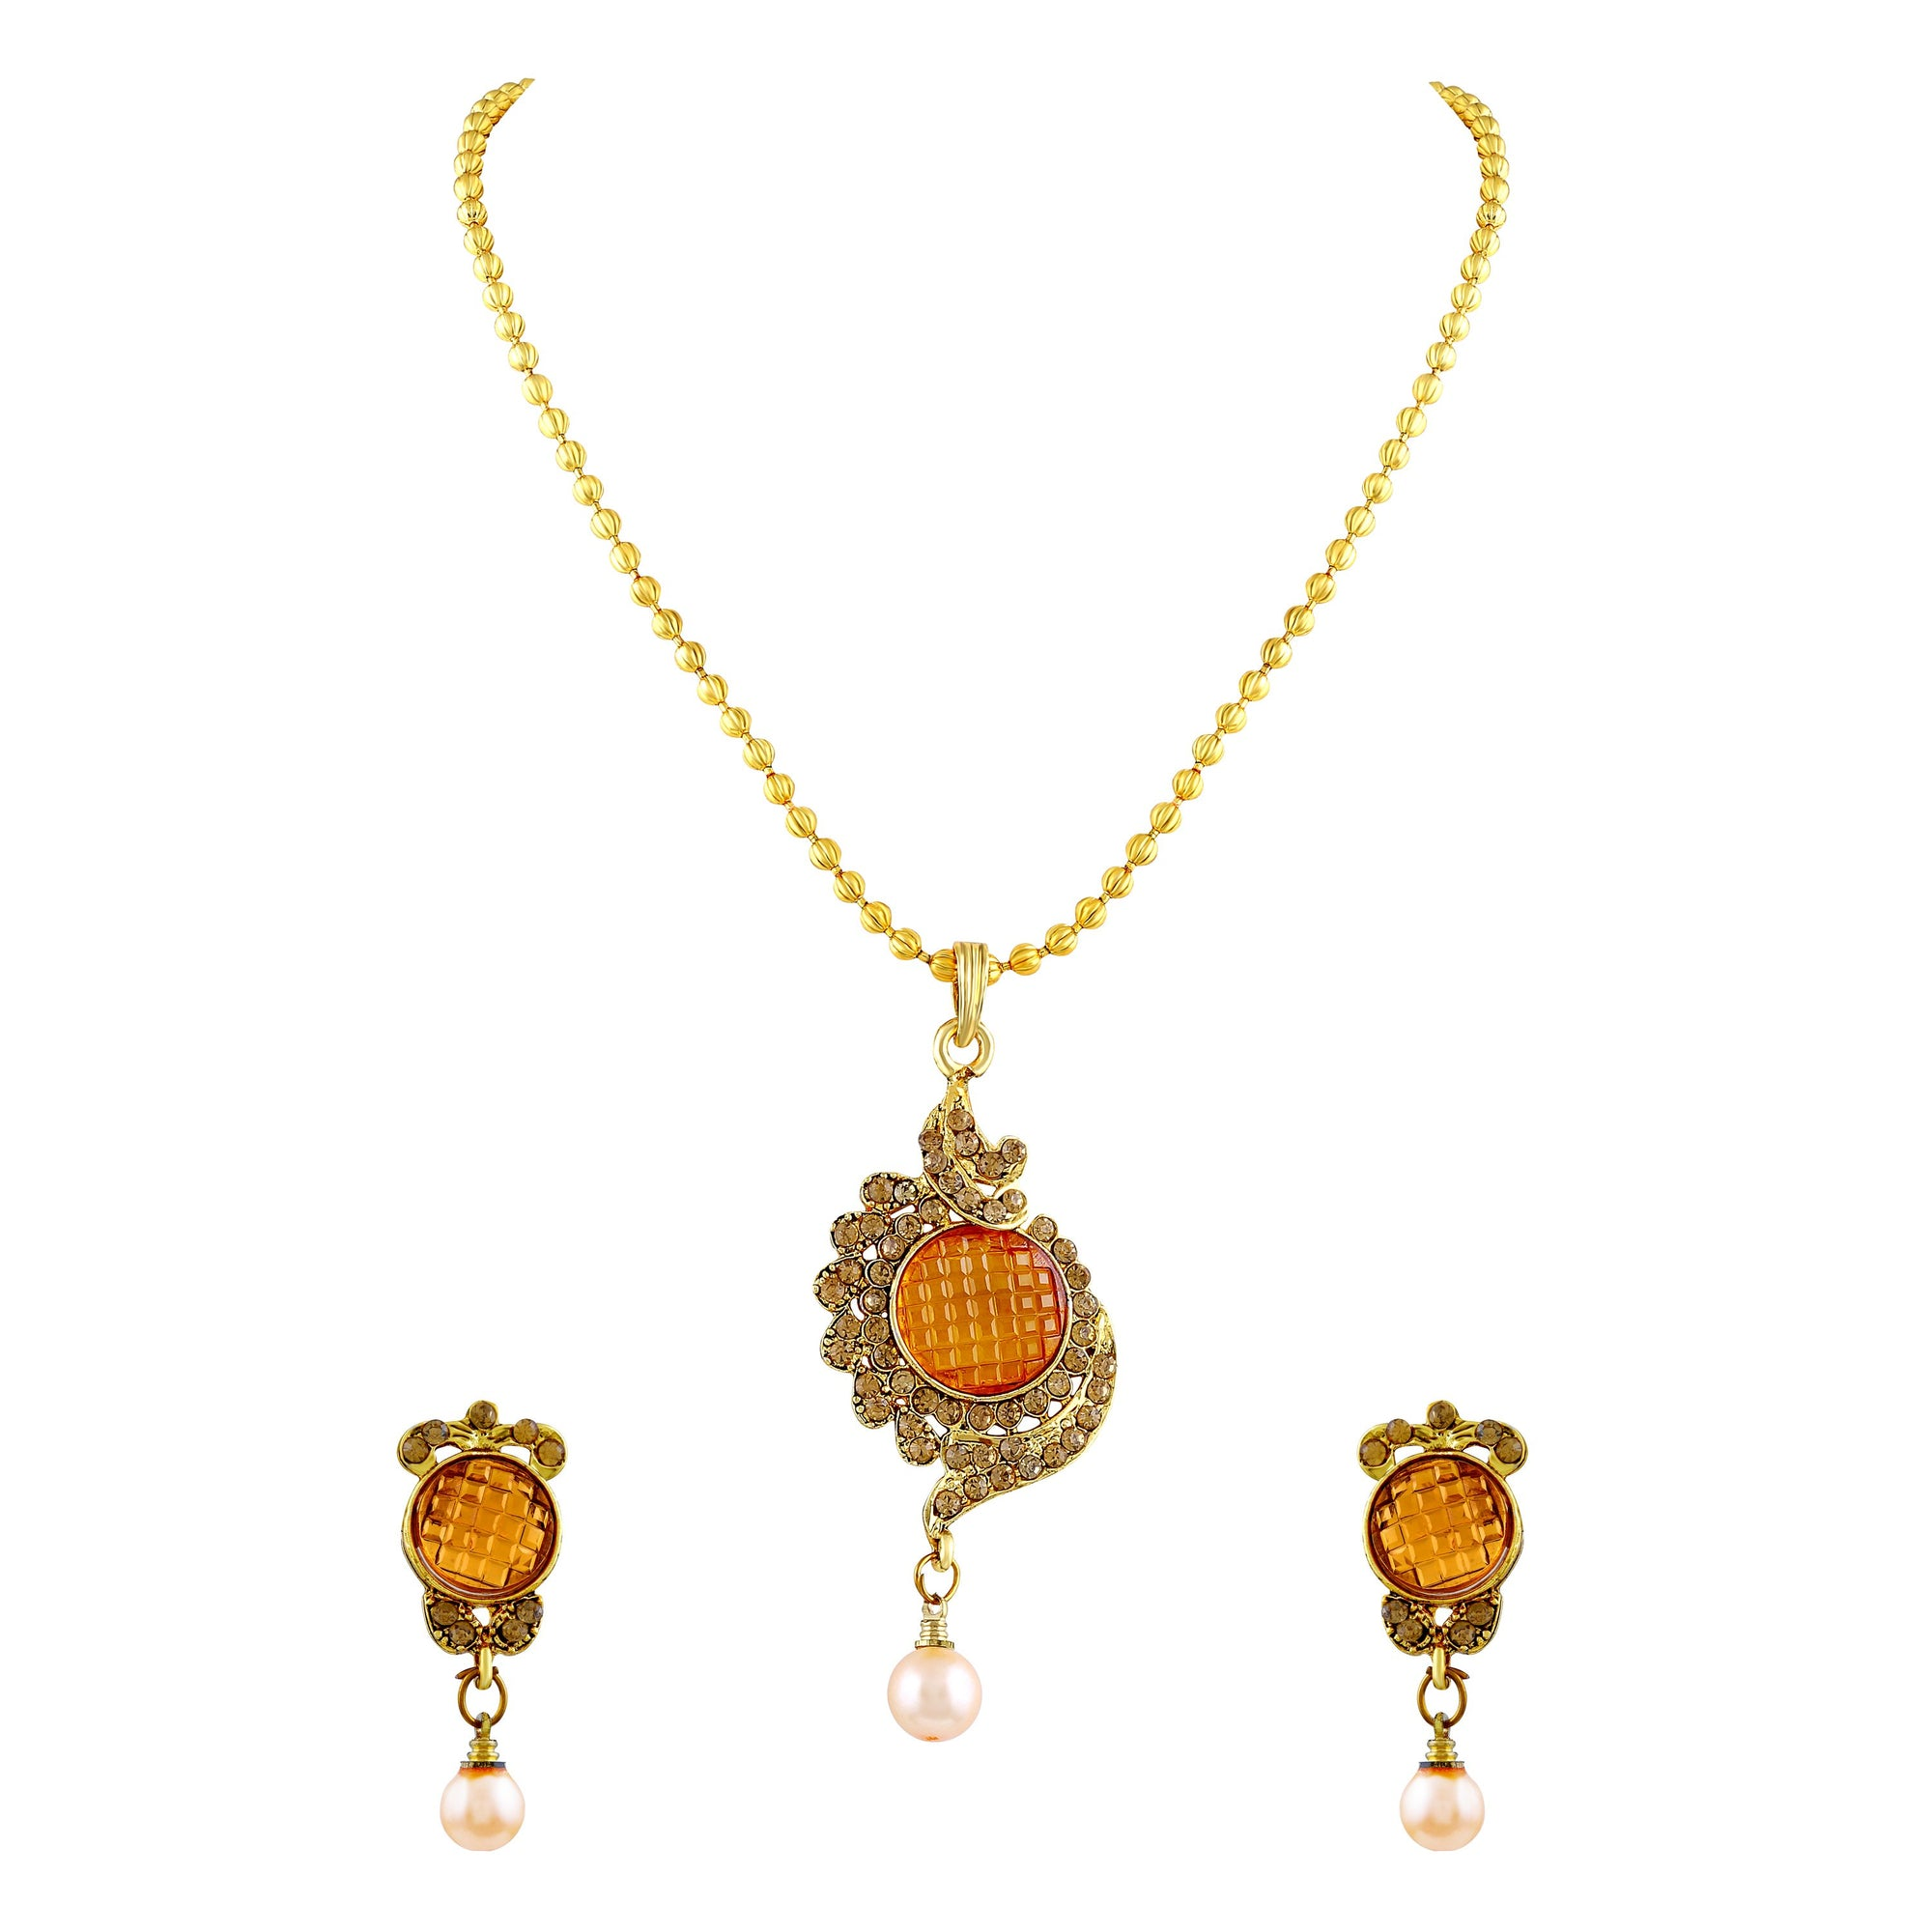 Asmitta Jewellery Alloy Jewel Set (Gold) -PS166